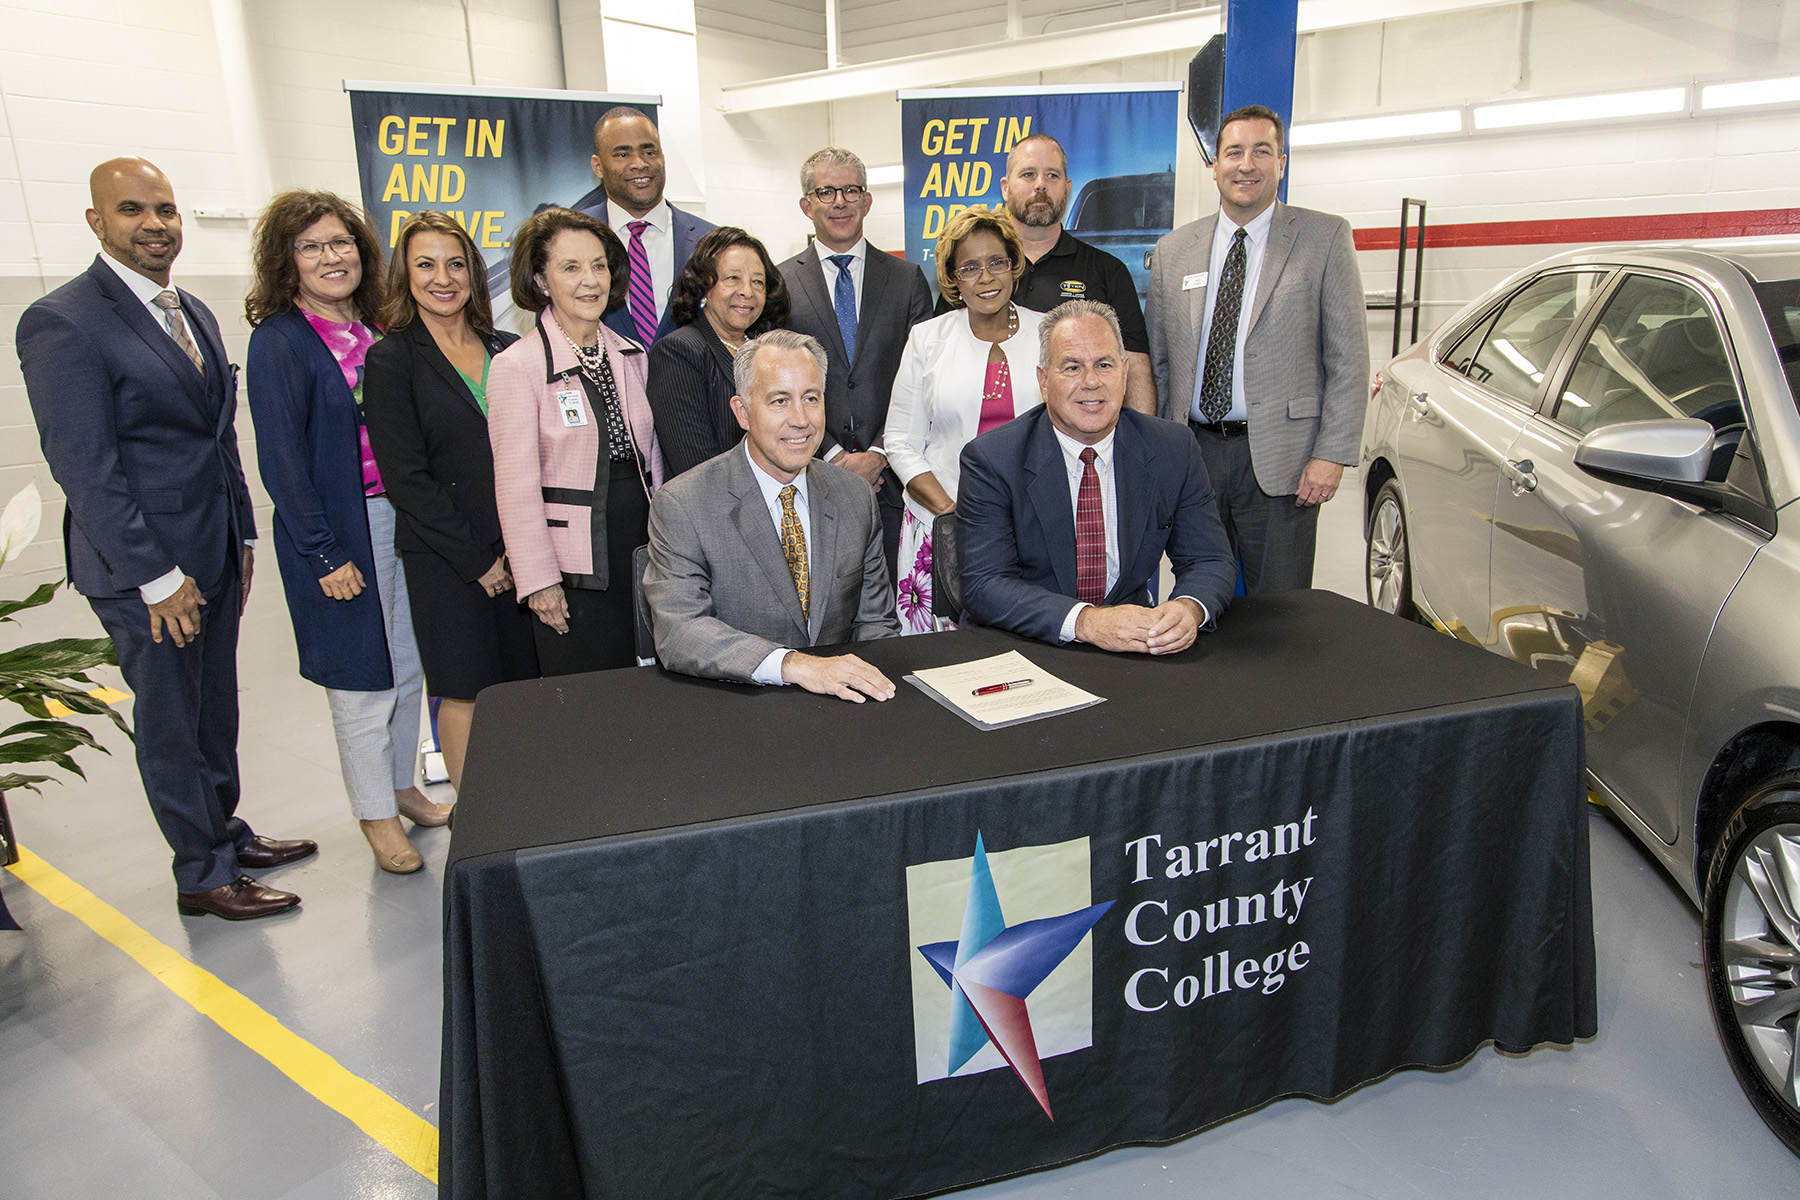 Partnership helps address critical skills gap in the automotive industry